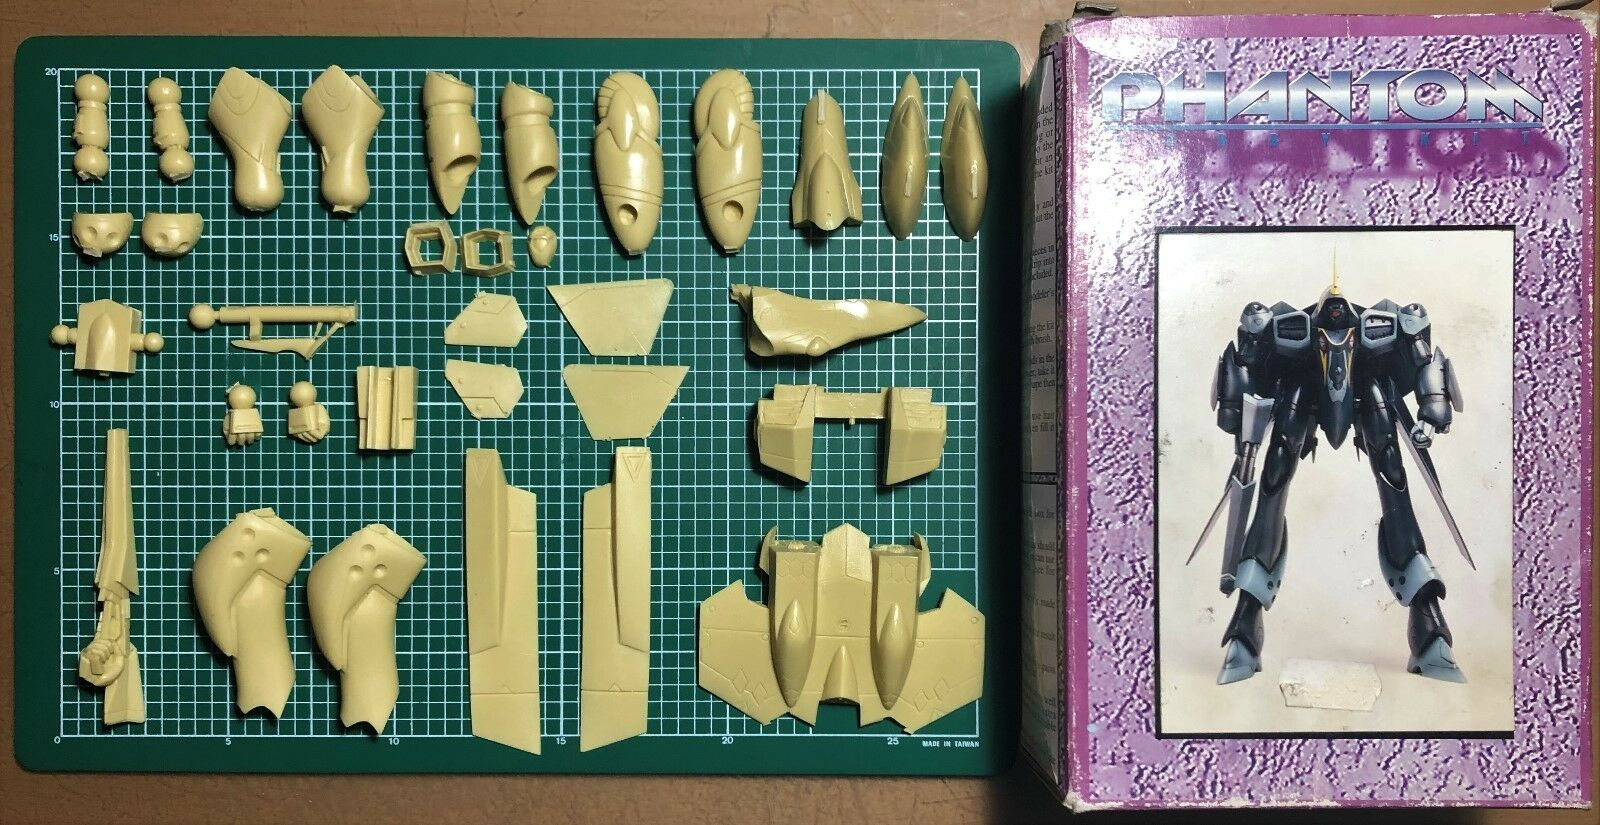 ELFIN MODEL - MACROSS PLUS YF-21 - 1 100 RESIN KIT